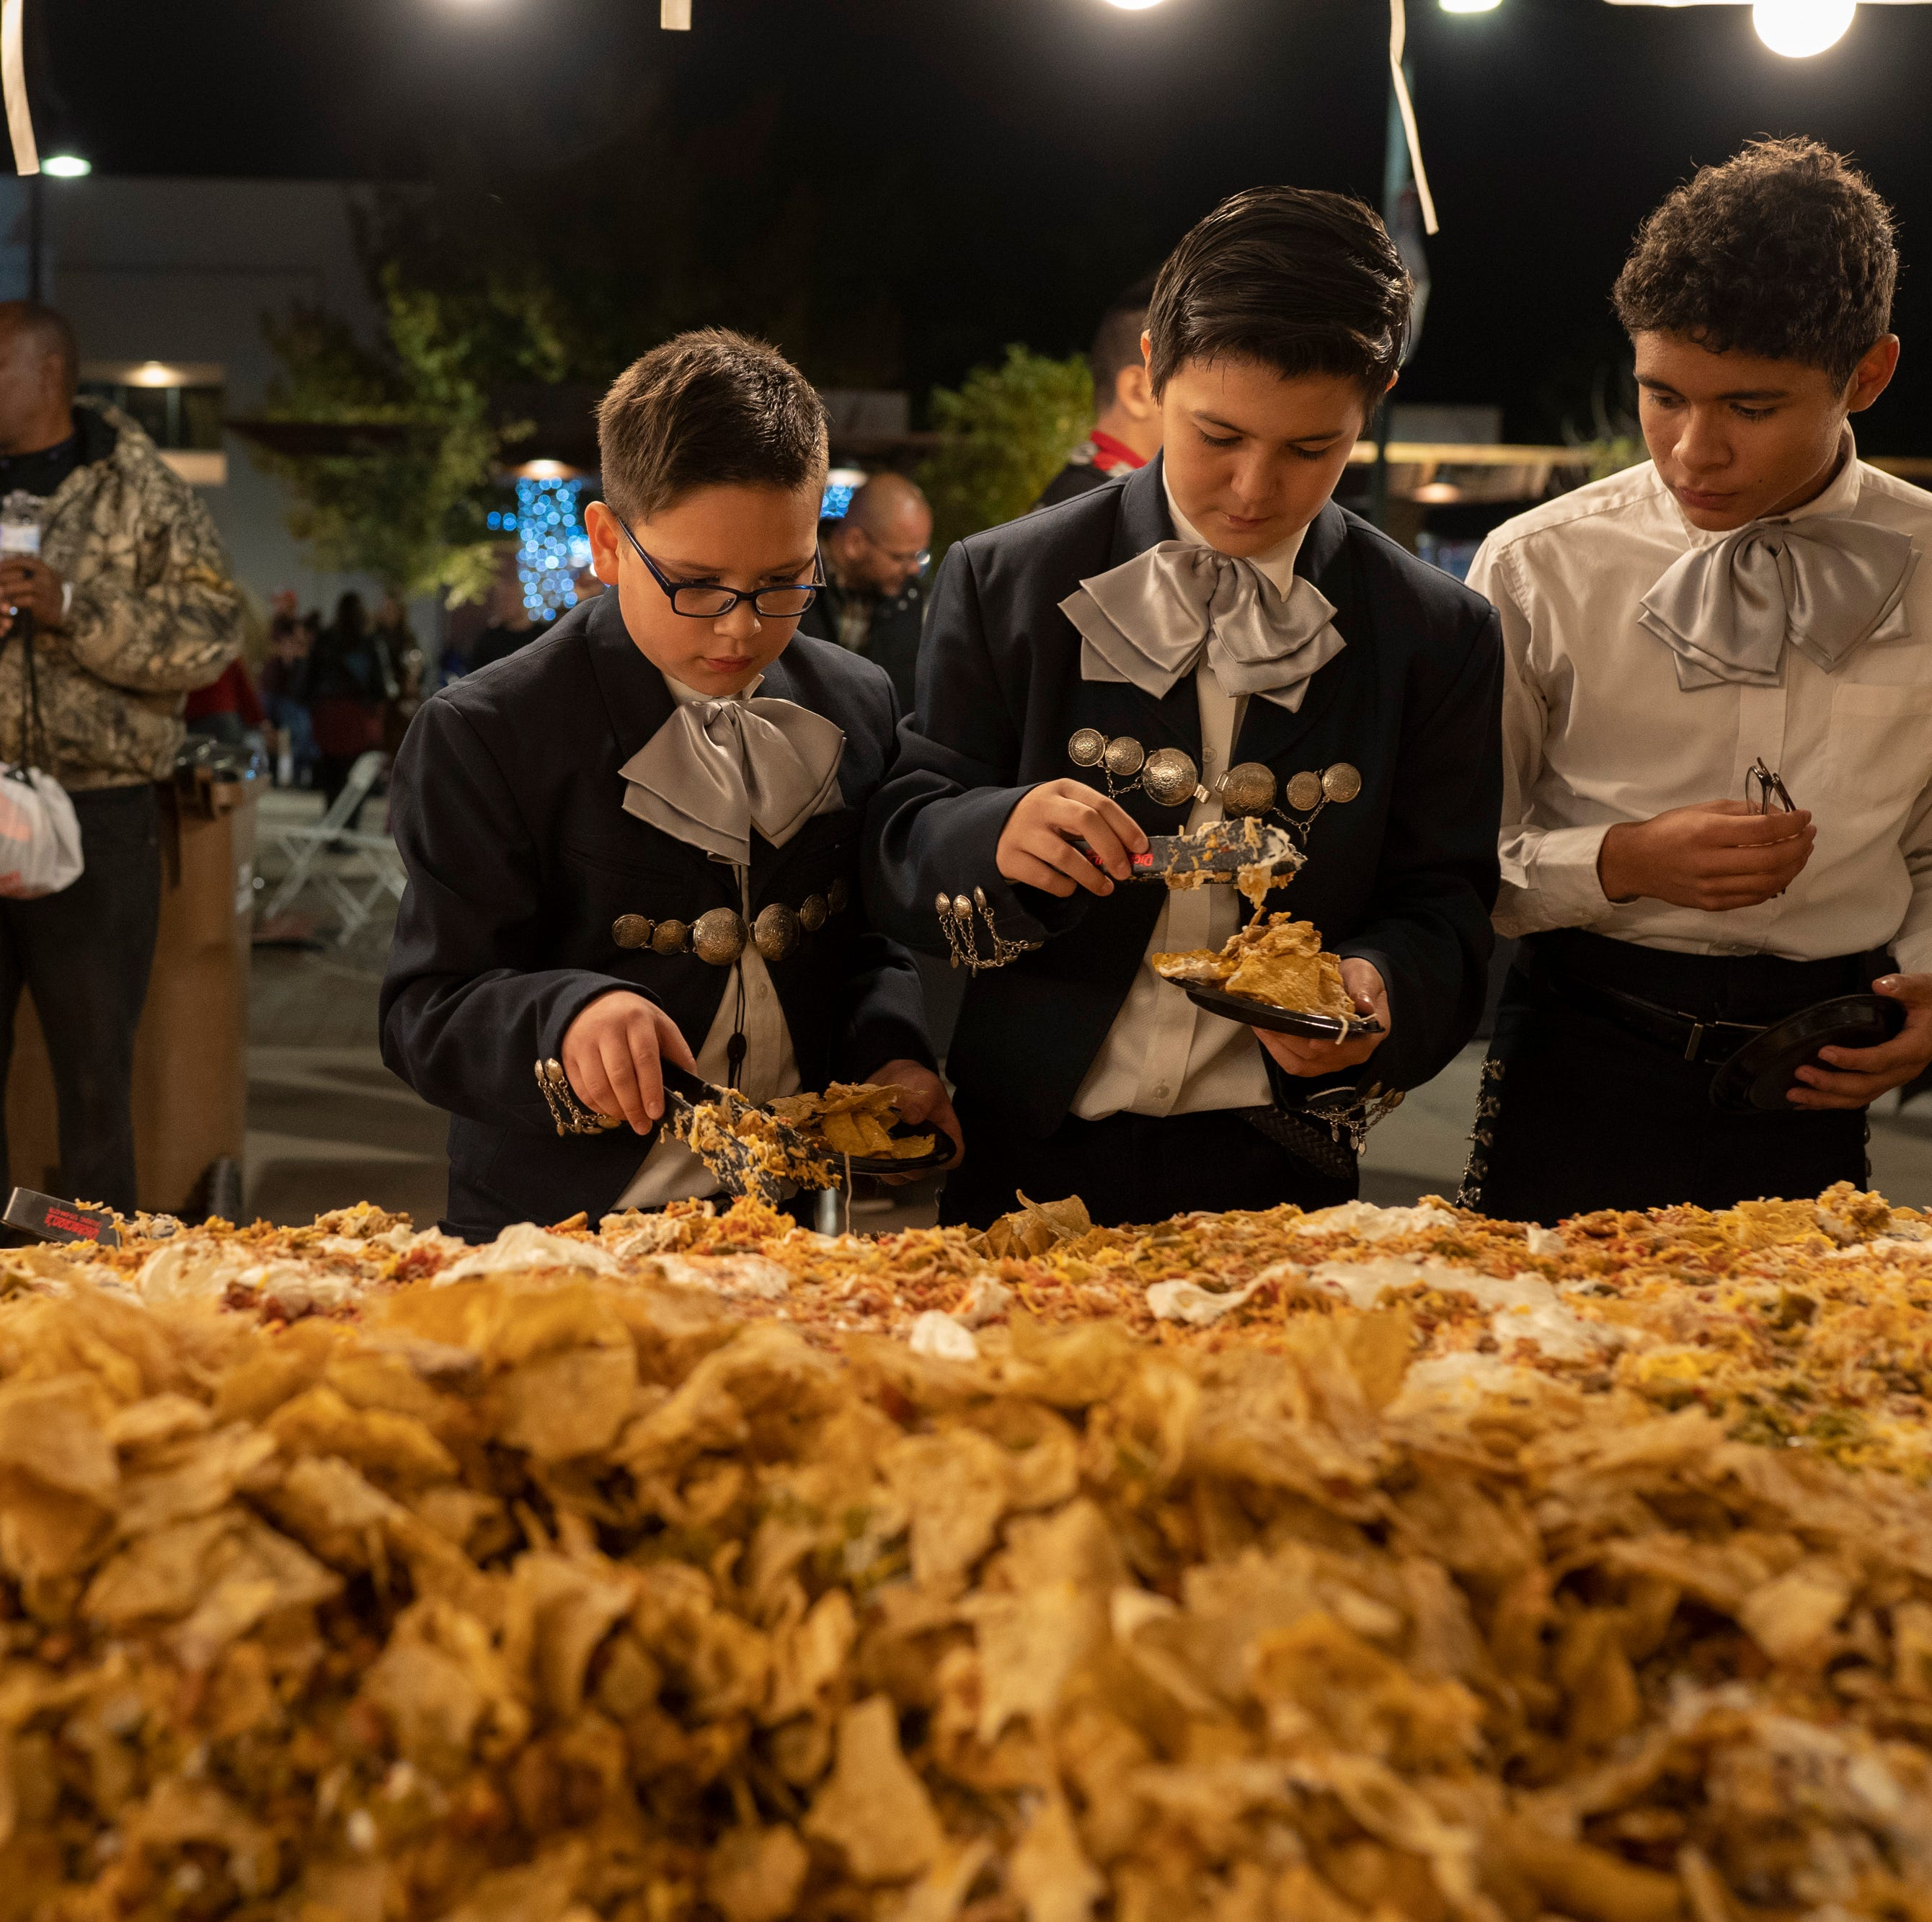 Las Cruces unofficially breaks record for world's largest serving of nachos